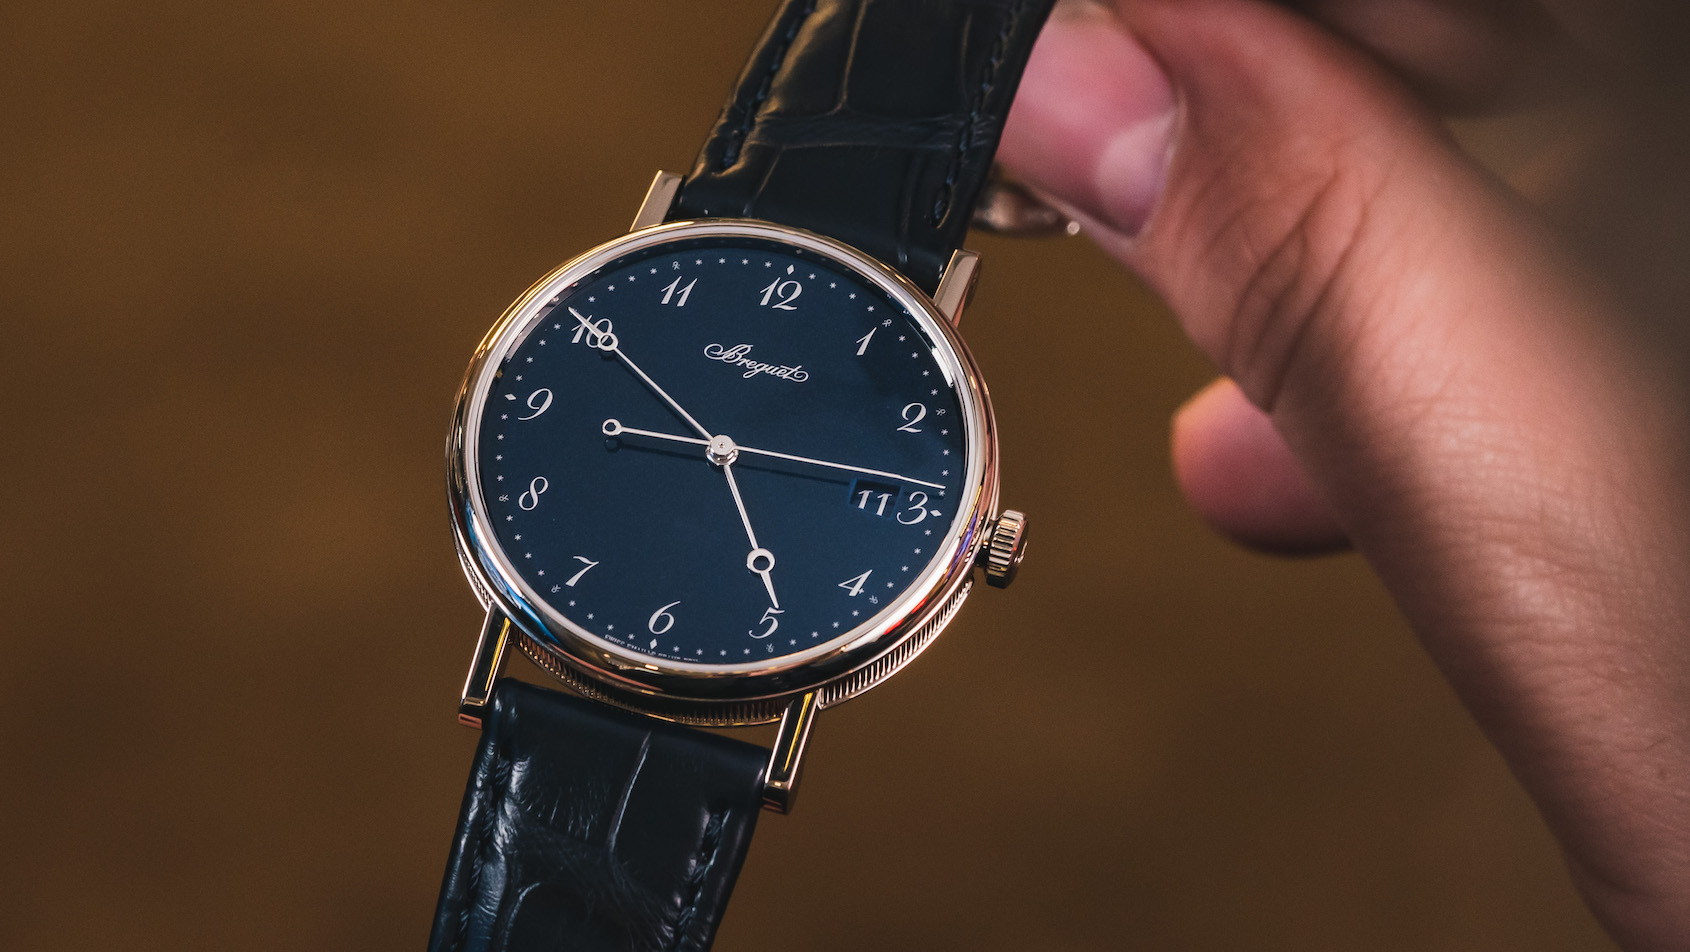 VIDEO: Keeping it classy with the Breguet Classique 5177